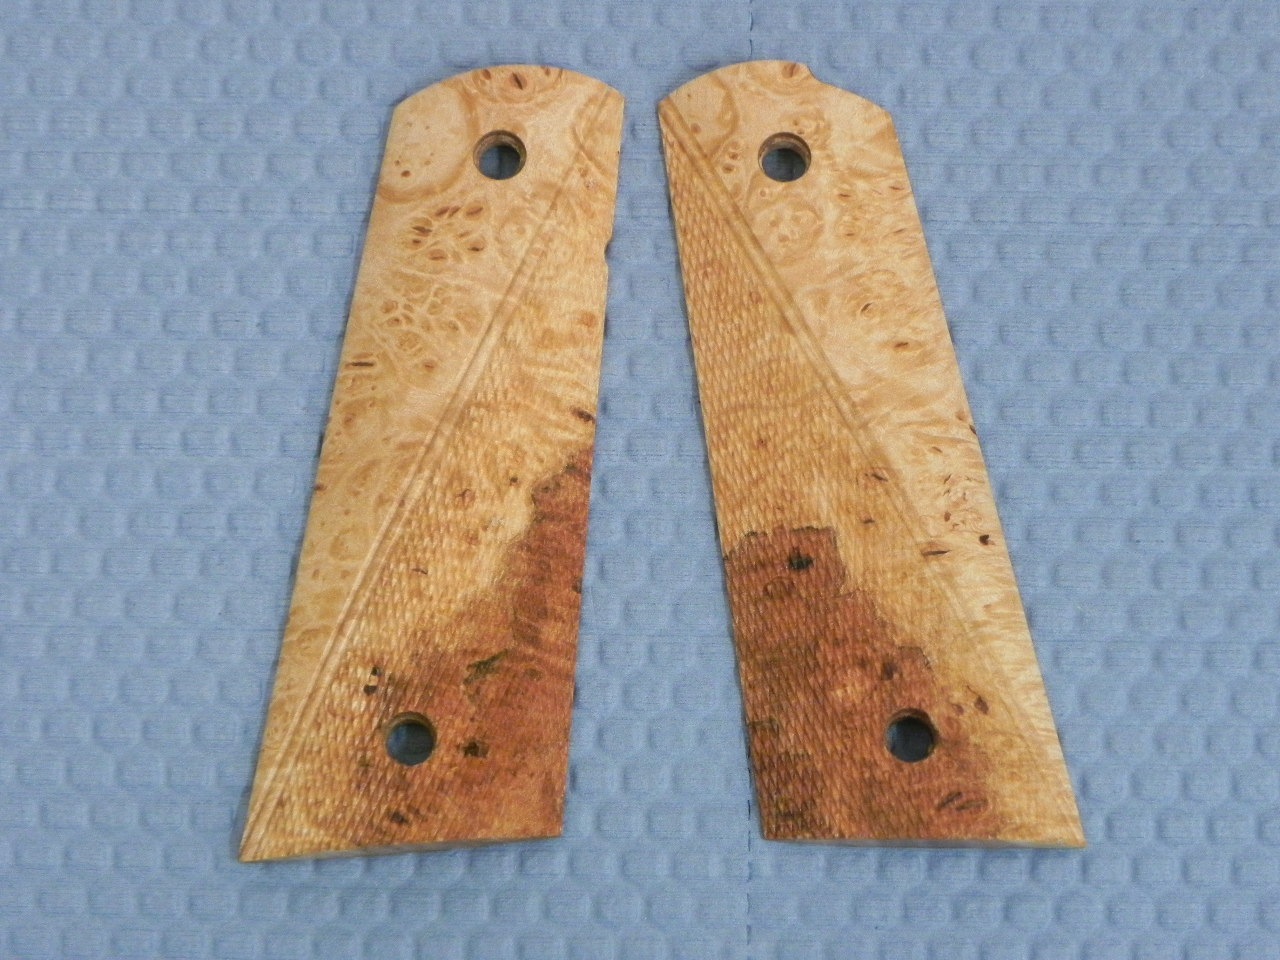 SUGMBNC1 - 1911 C&S Premium Handmade Checkered Maple Burl Grips